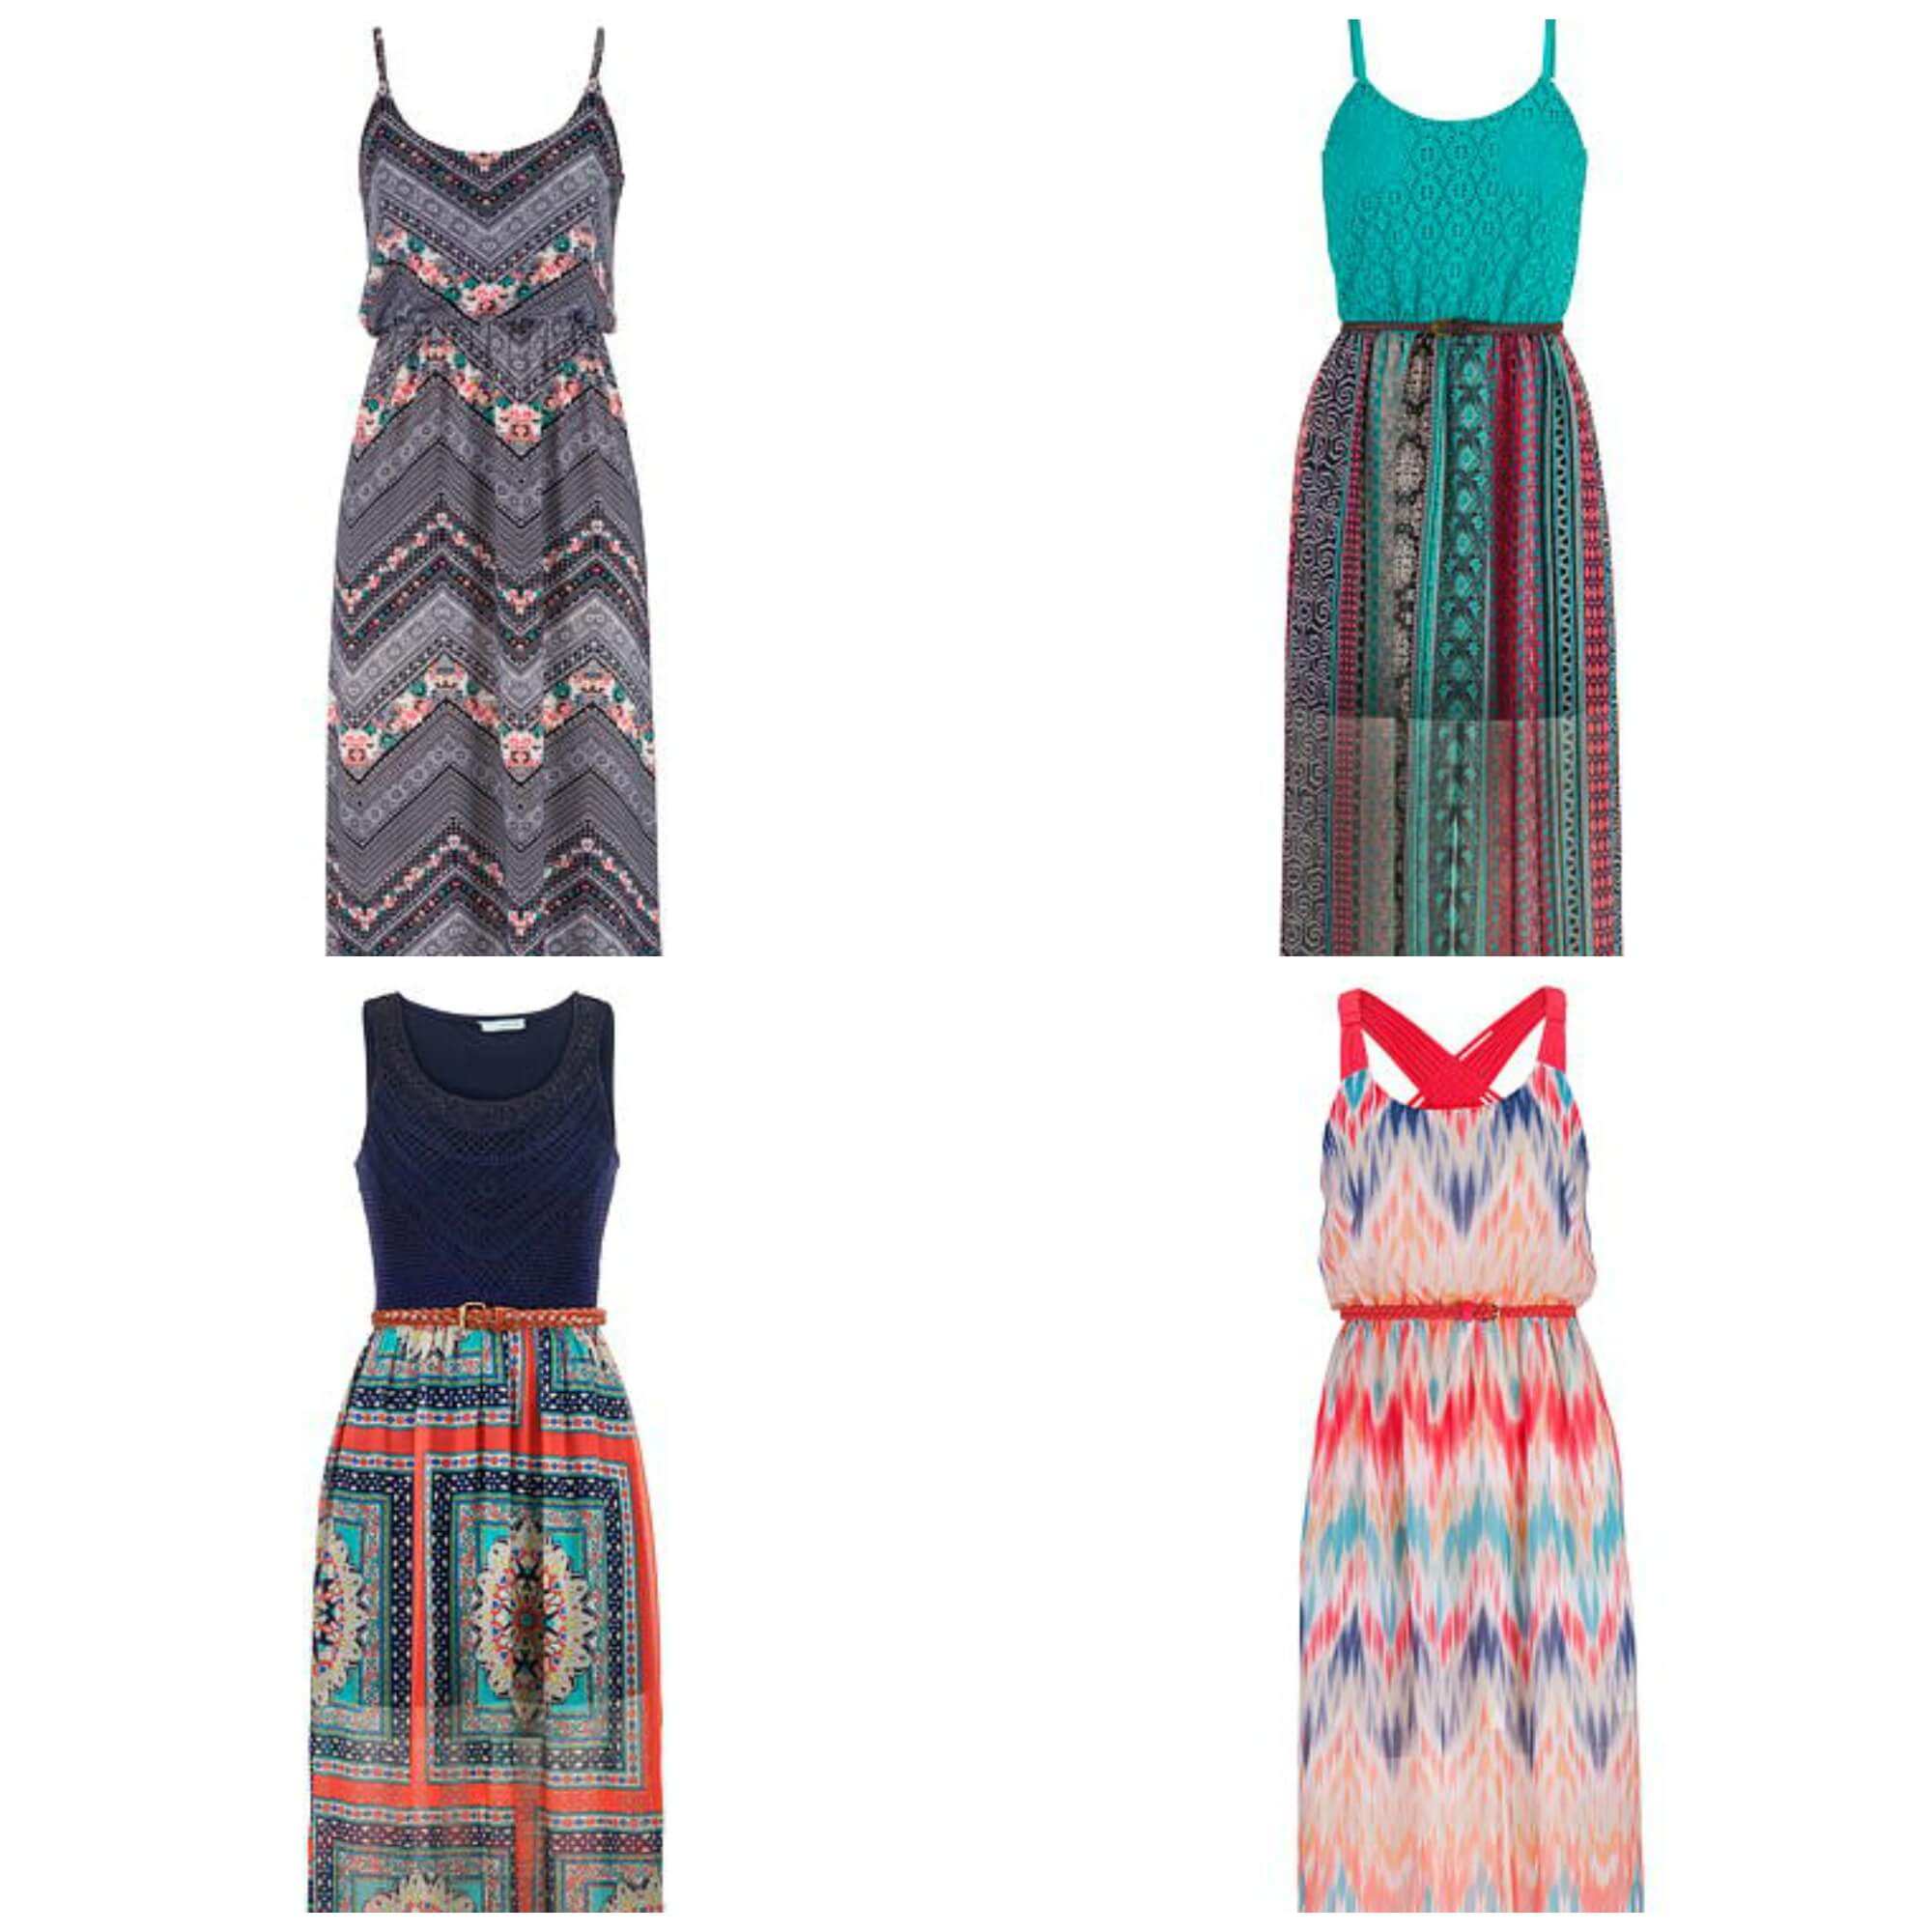 Trend Alert: Maxi Dresses and Skirts - Face & Fitness